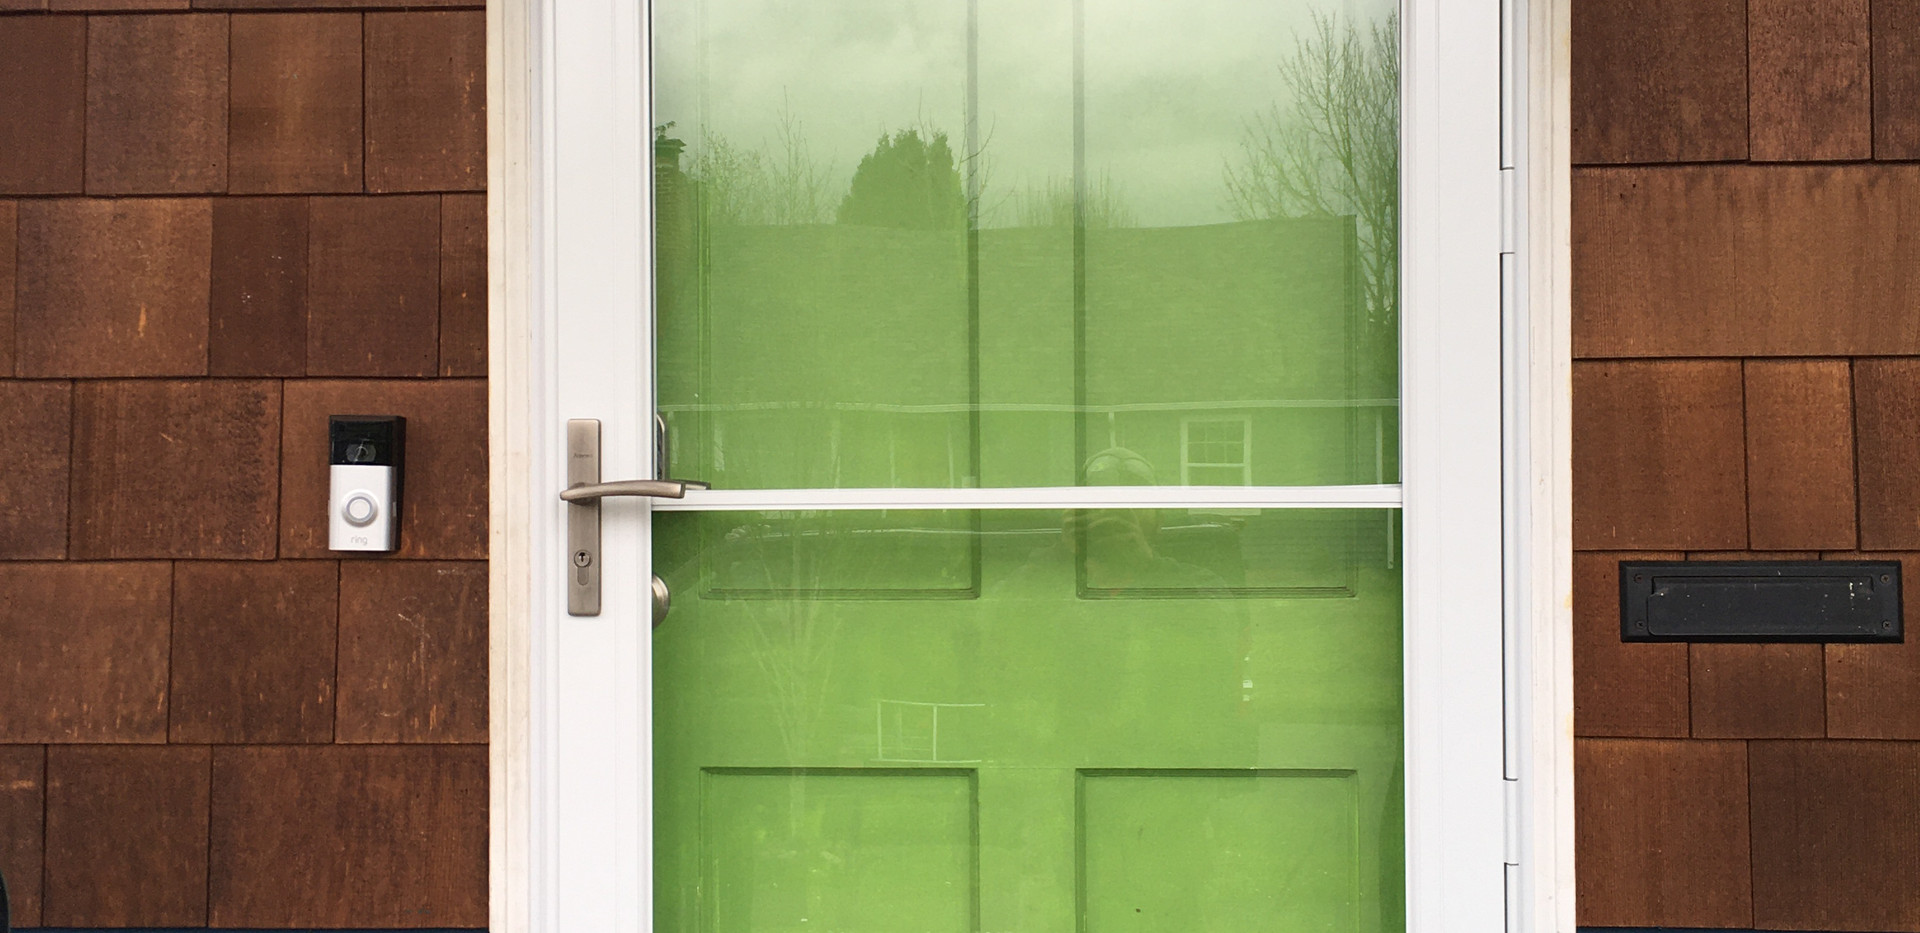 6 panel green door and glass door